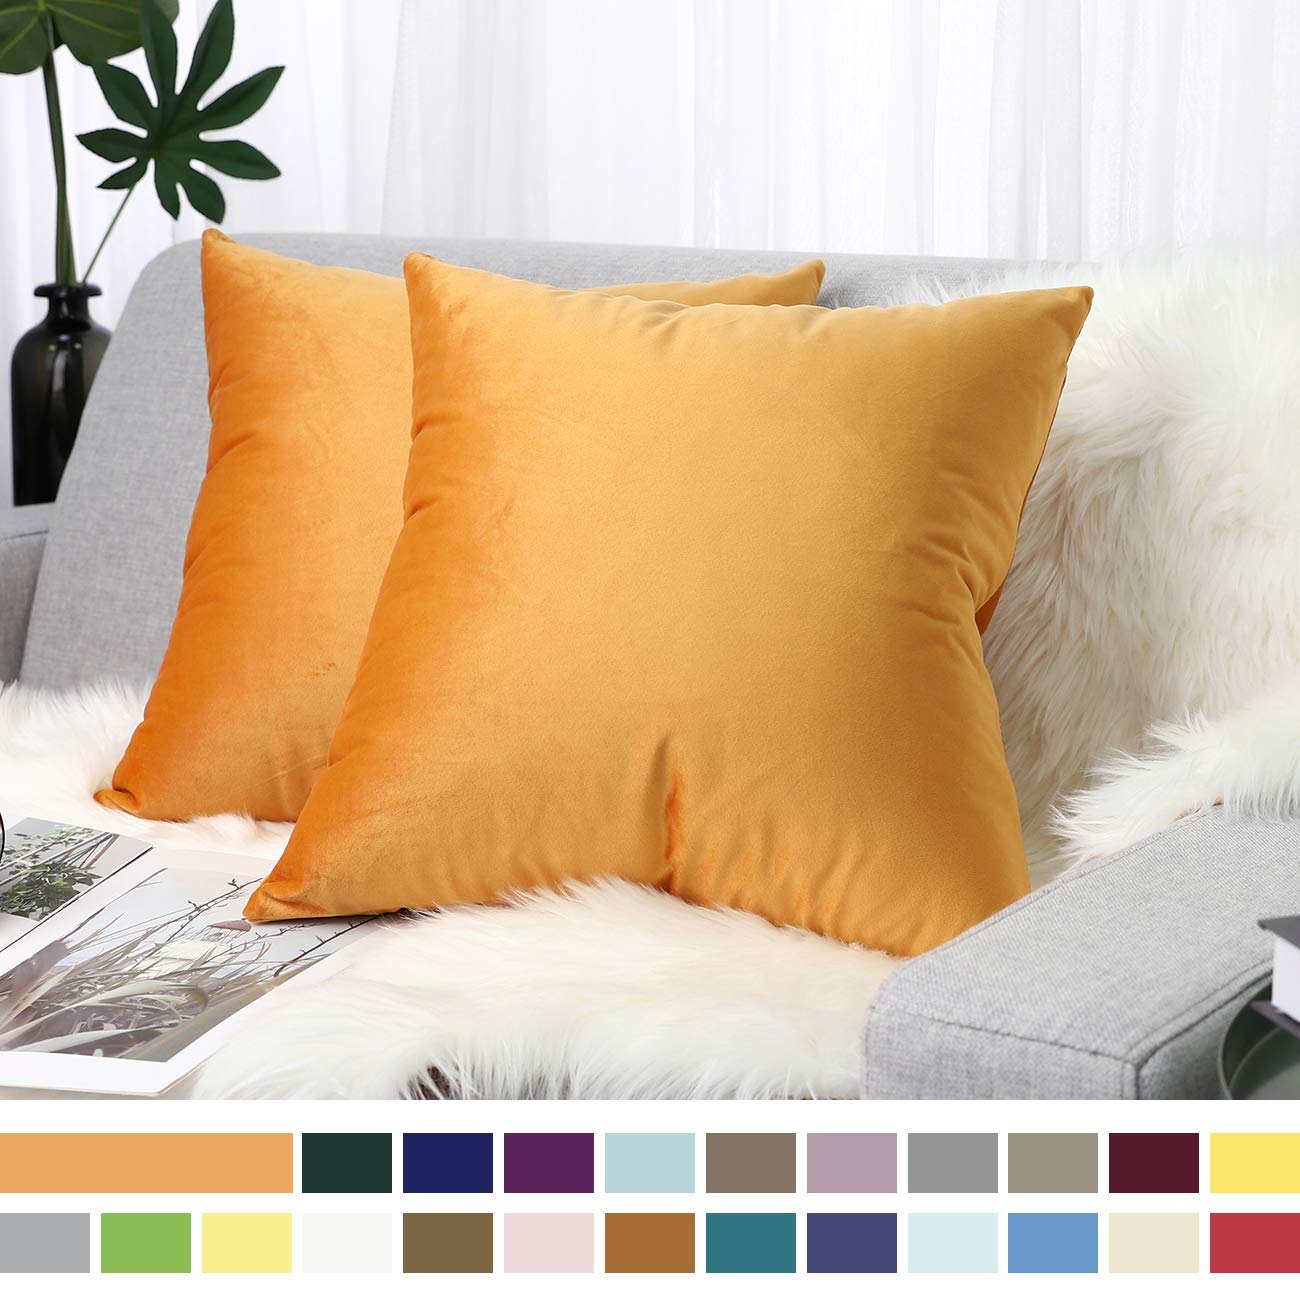 """Lewondr Velvet Soft Throw Pillow Cover, 2 Pack Modern Solid Color Square Decorative Throw Pillow Case Cushion Covers for Car Sofa Bed Couch Home Decor, 18""""x18""""(45x45cm), Orange"""